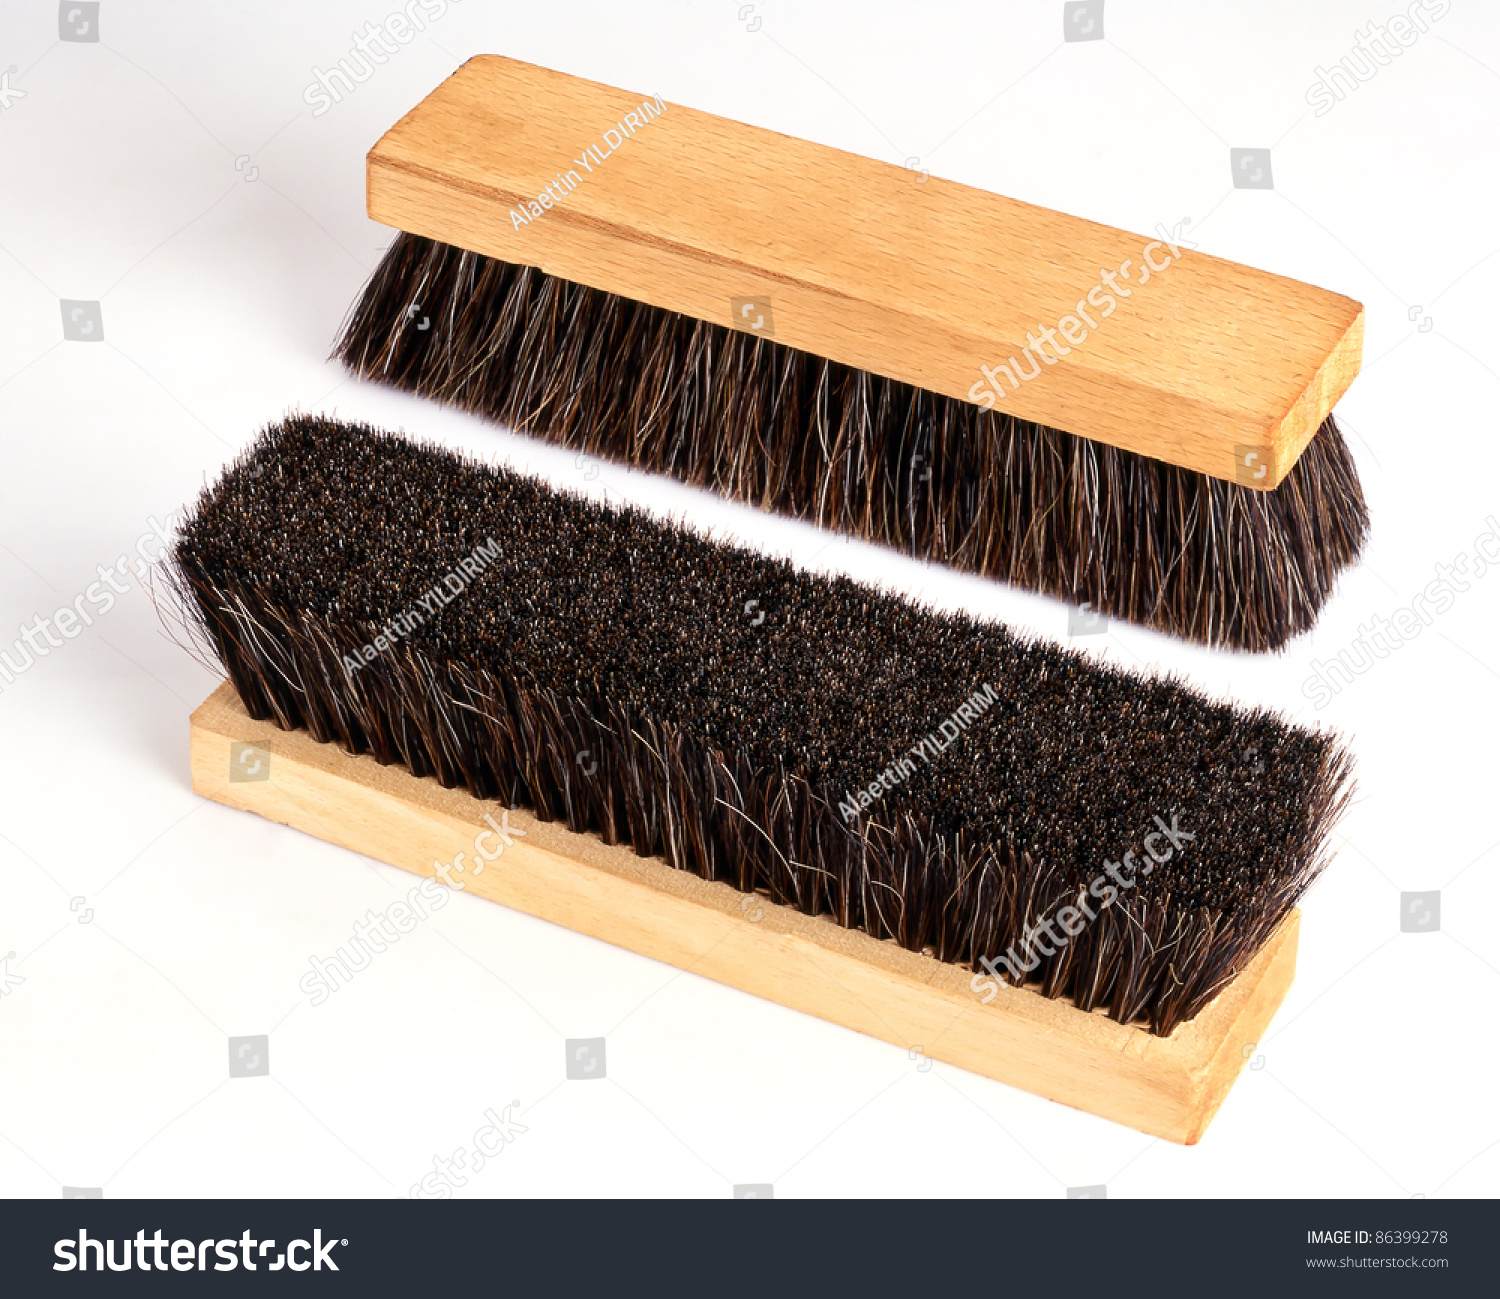 how to clean a wooden brush